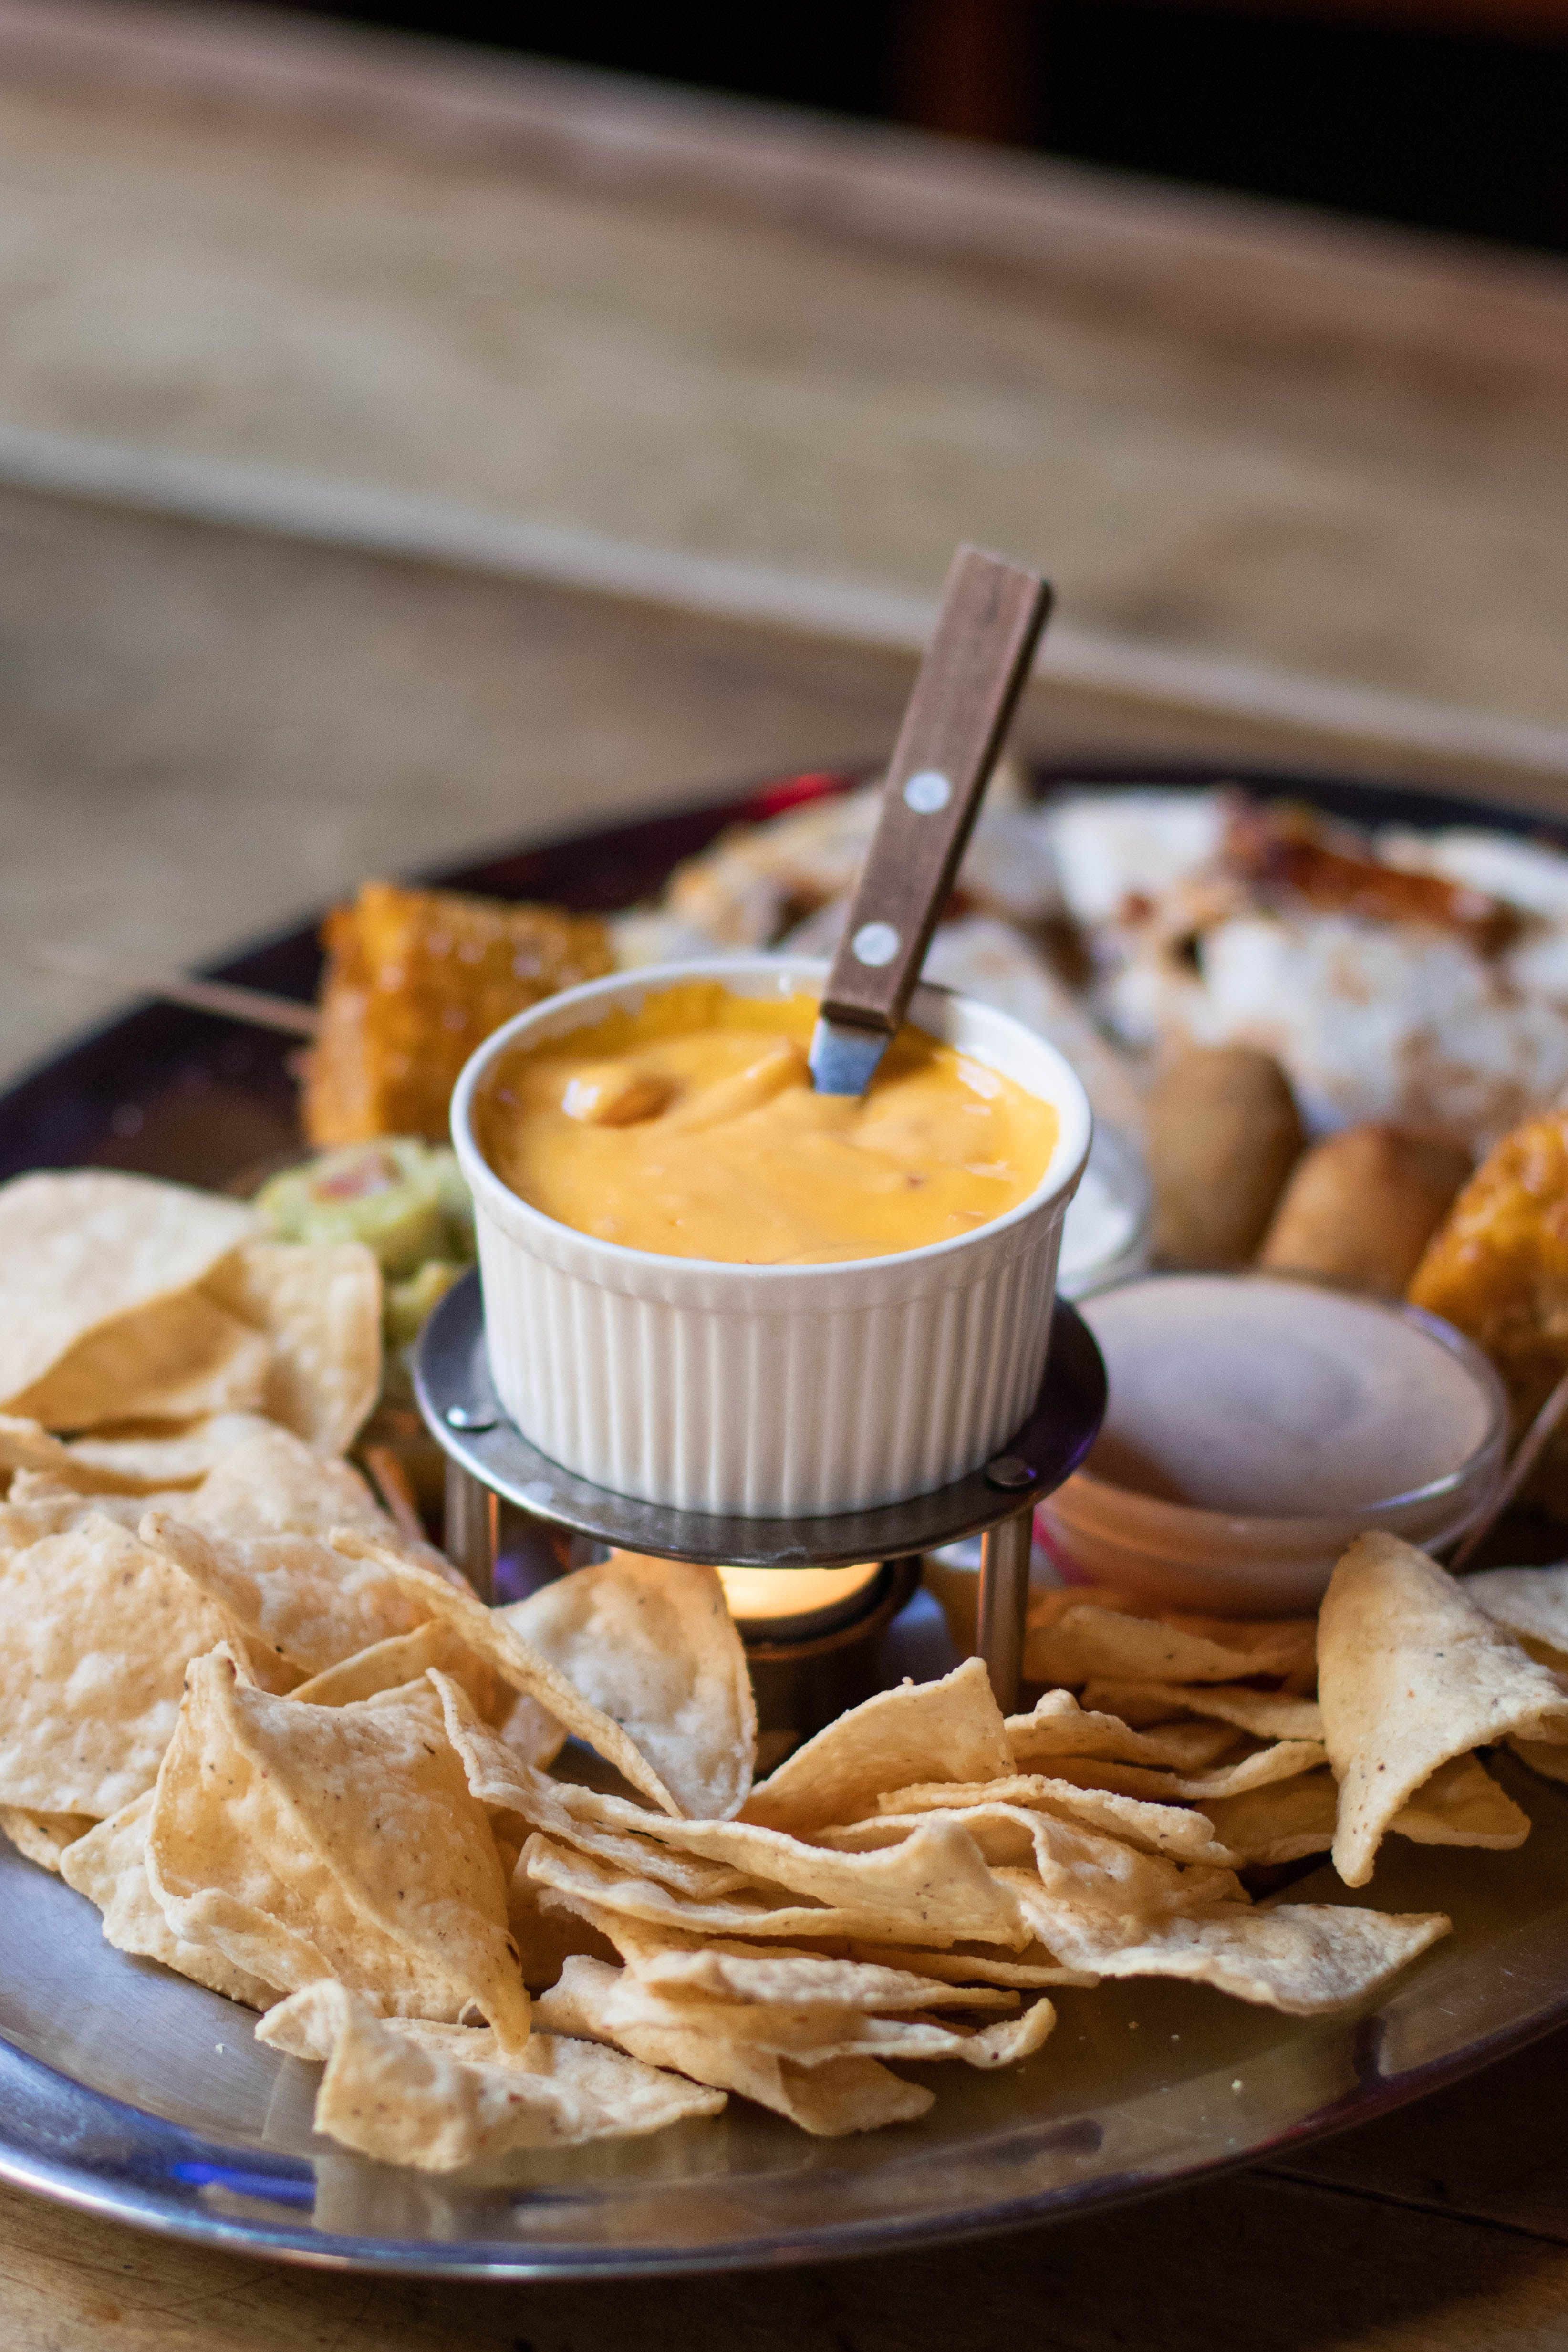 Tray of Chips With Cream